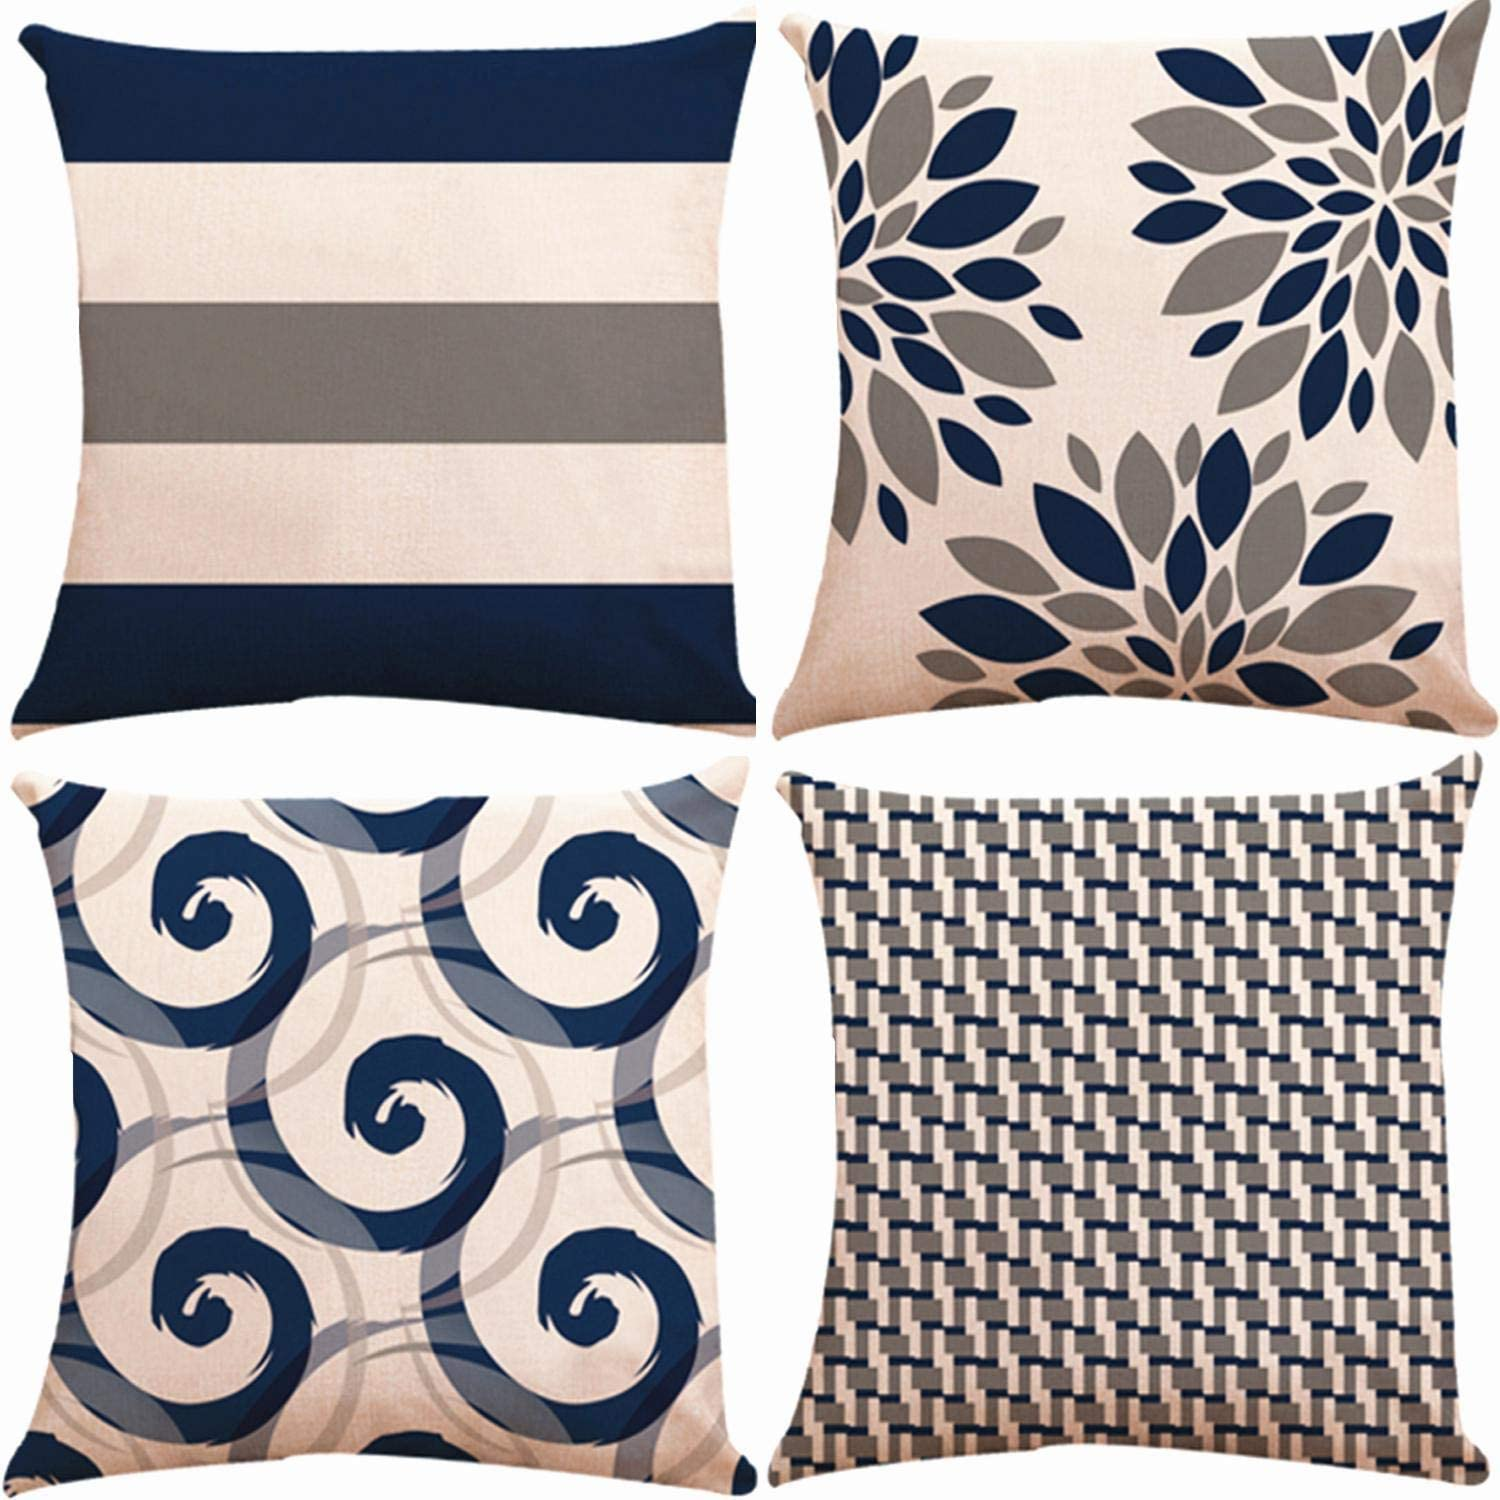 Geometric Throw Pillow Covers 18x18 Inch Double Sided Munzong Set Of 4 Cotton Linen Indoor Outdoor Floral Decorative Cushion Covers For Car Sofa Home Decor Navy Gray Check Mix Match Abstract Art